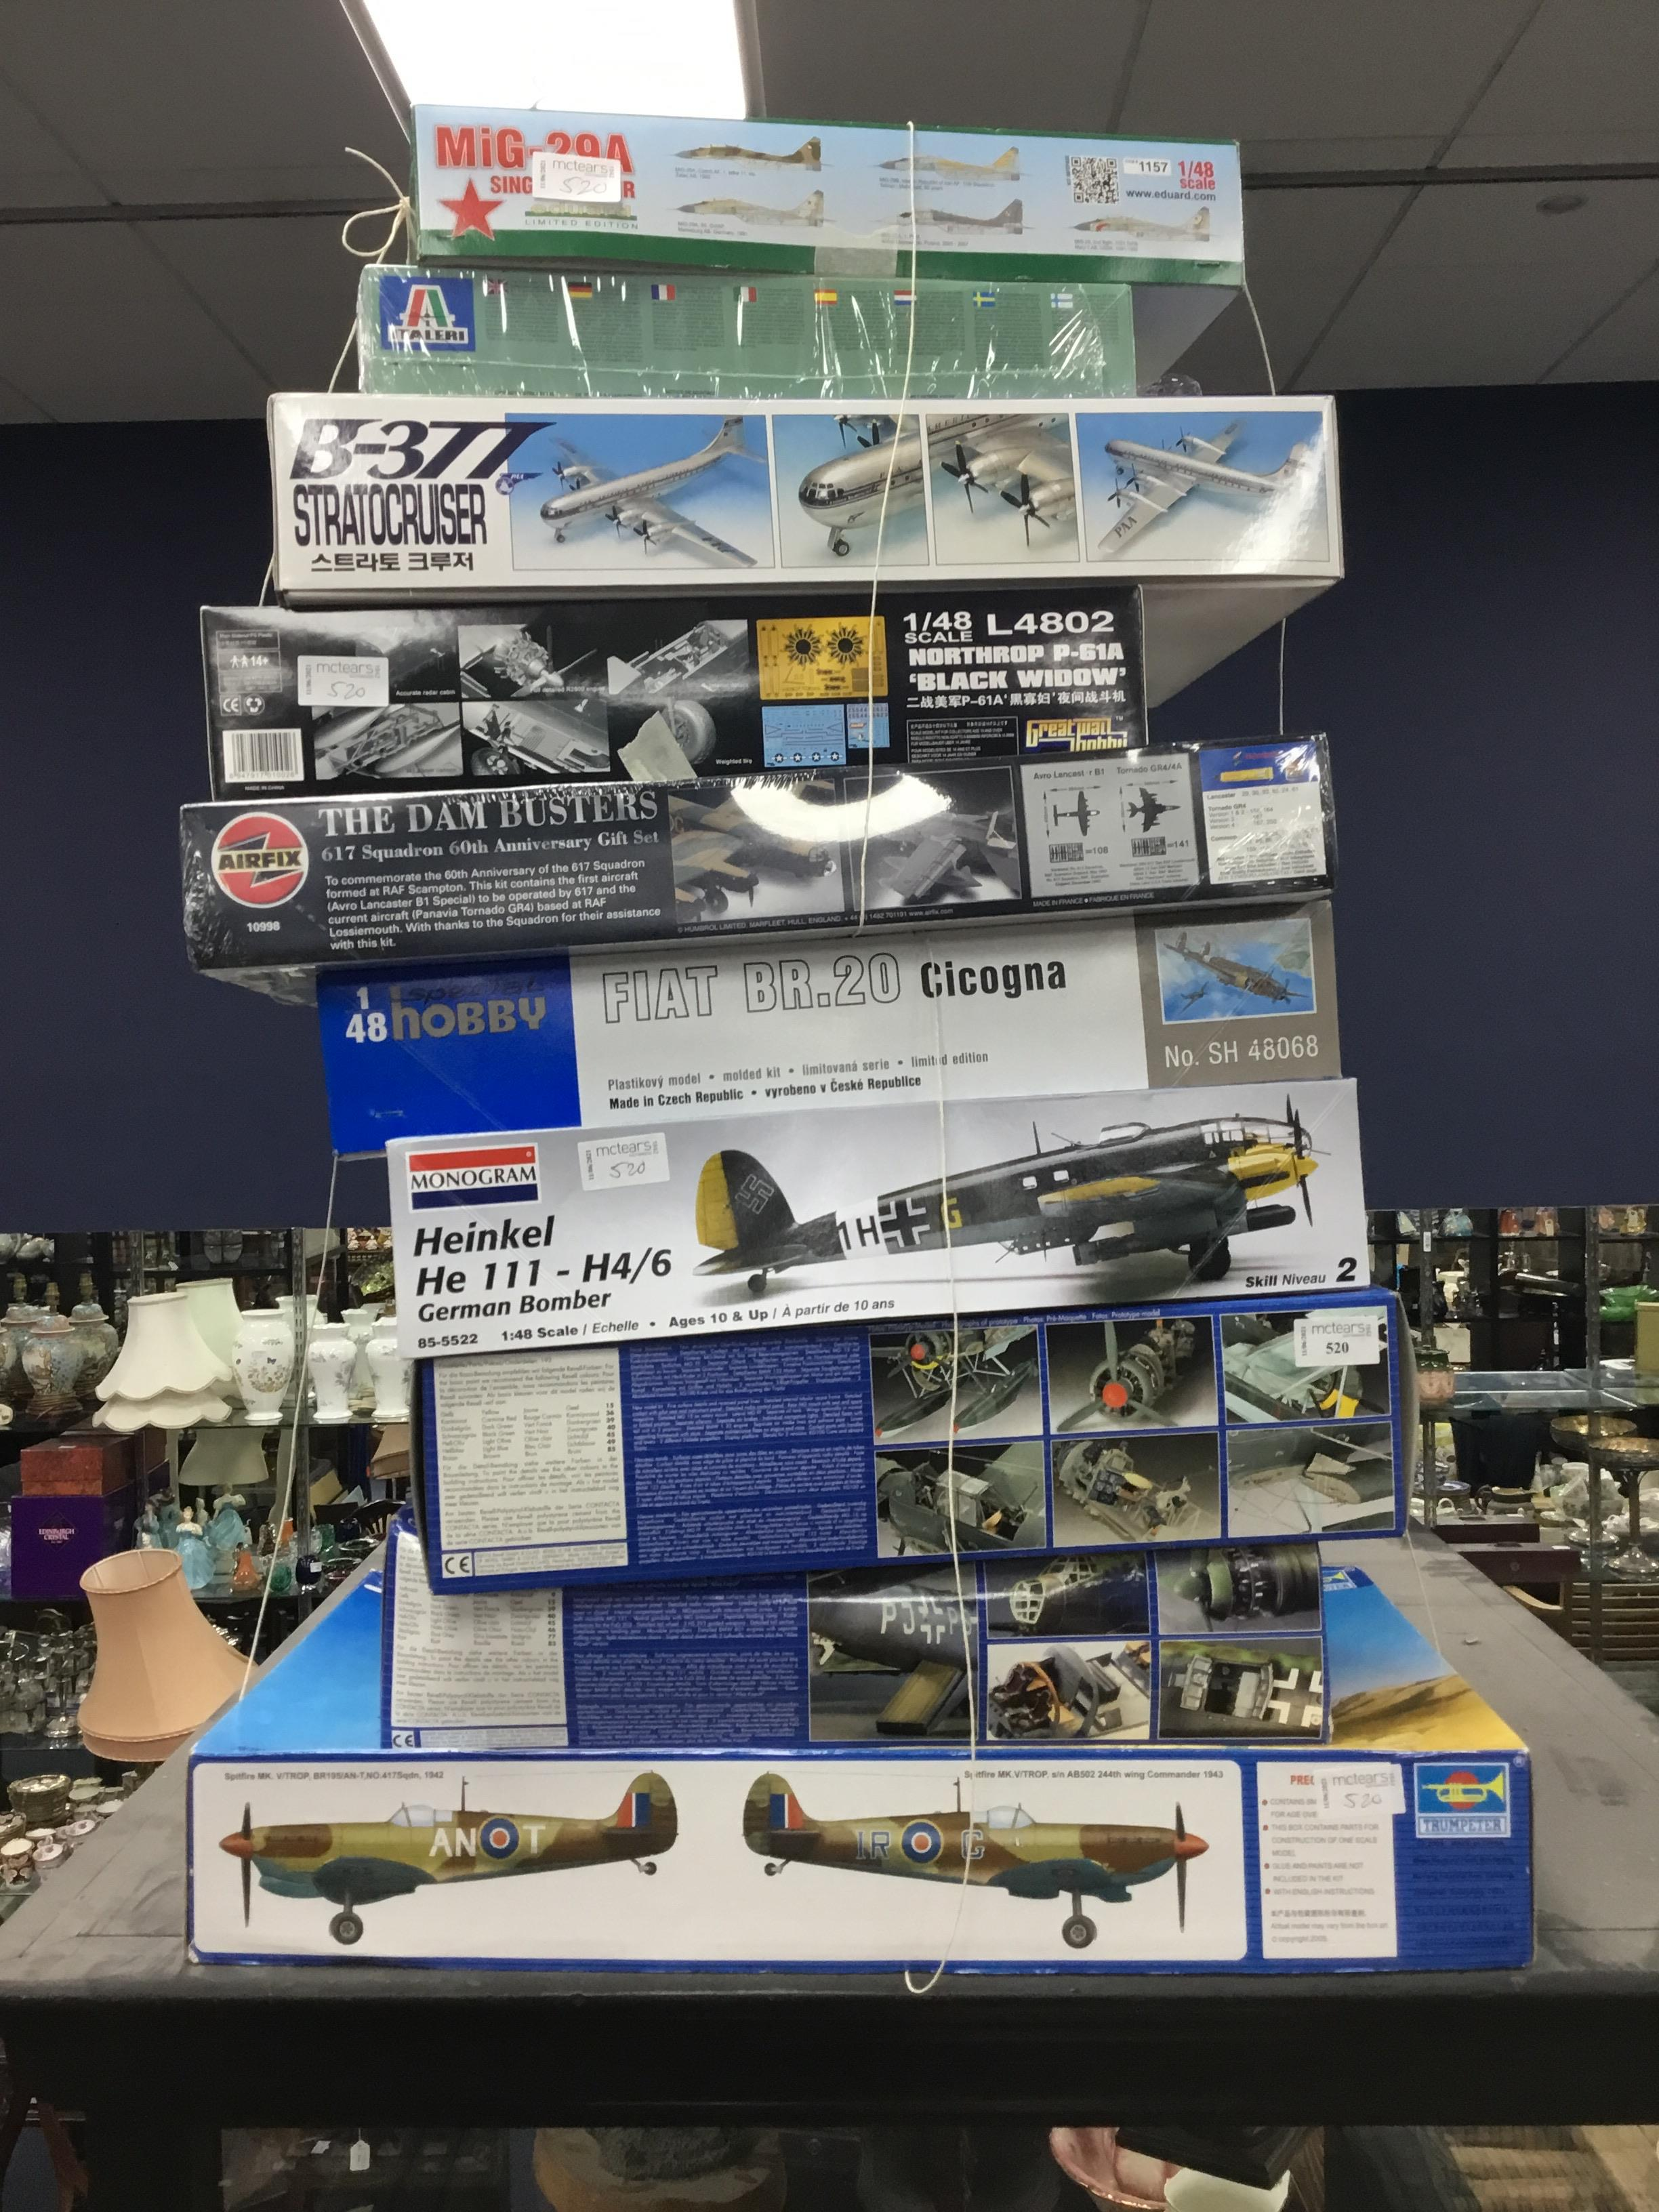 A COLLECTION OF TEN AIRFIX, EDUARD, TRUMPETER, REVELL AND OTHER AIRCRAFT MODELS